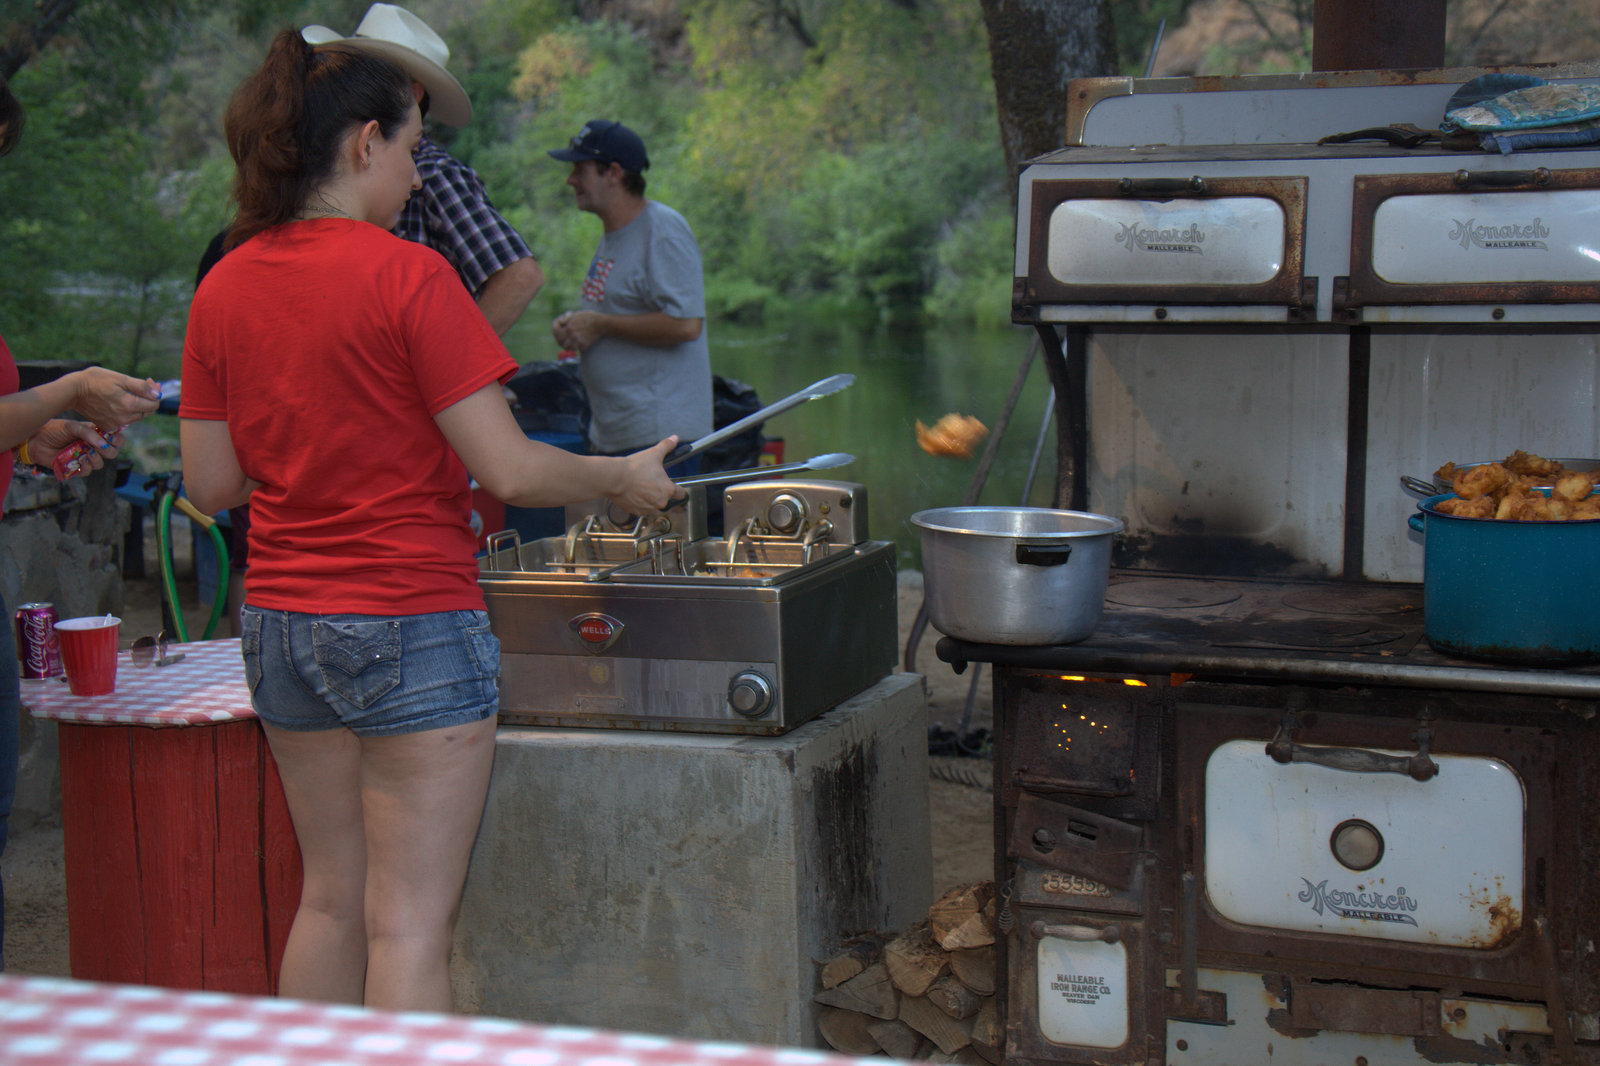 Saturday night cookout at Roaring Camp